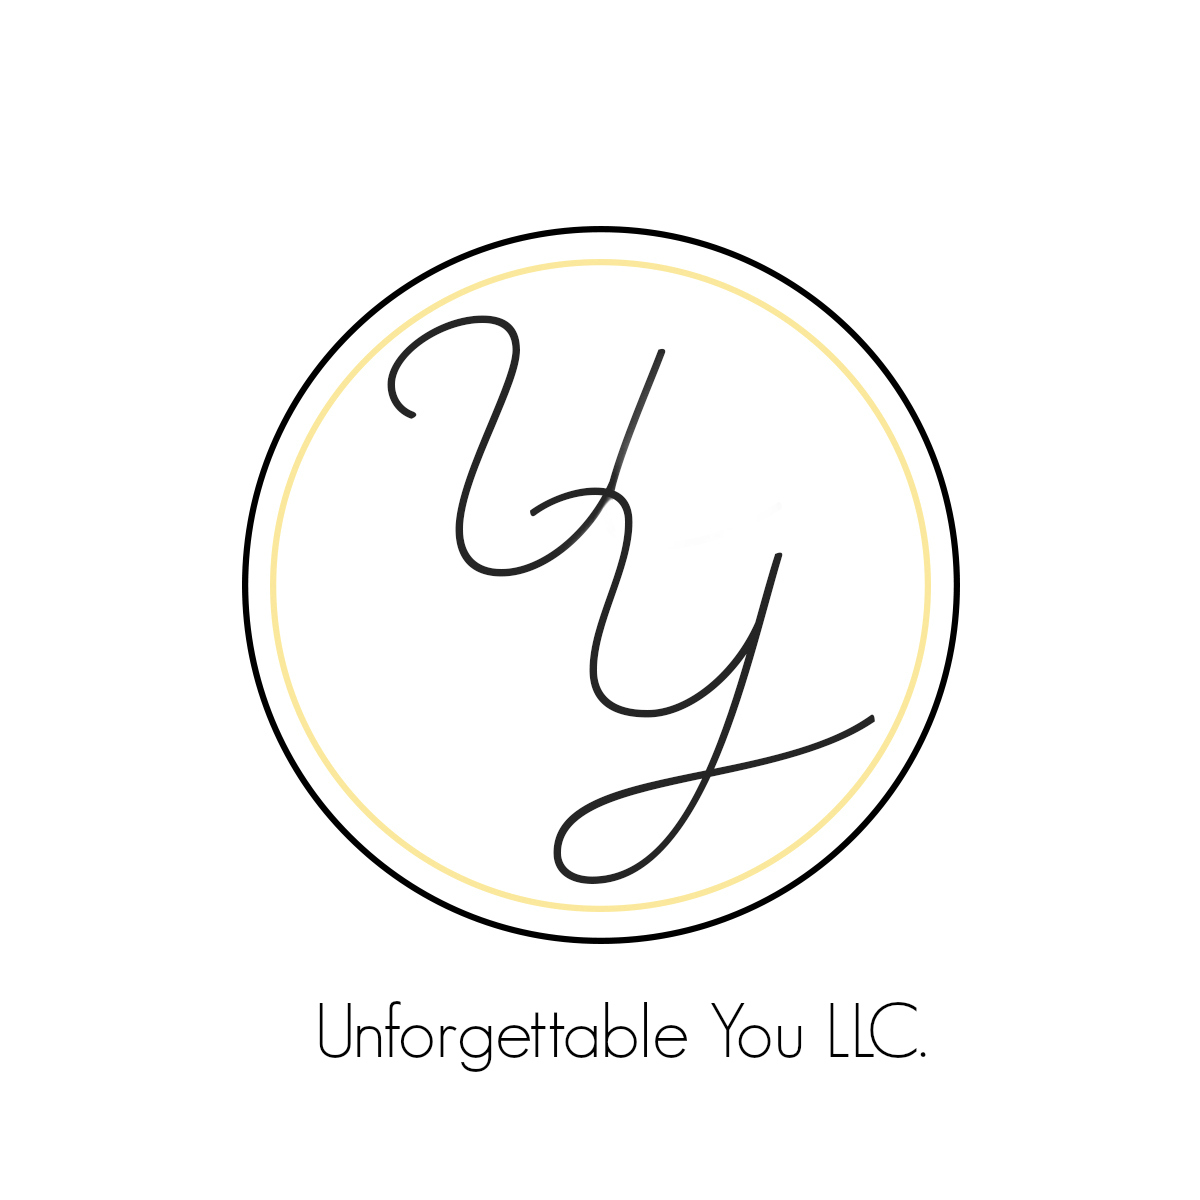 Unforgettable You LLC.